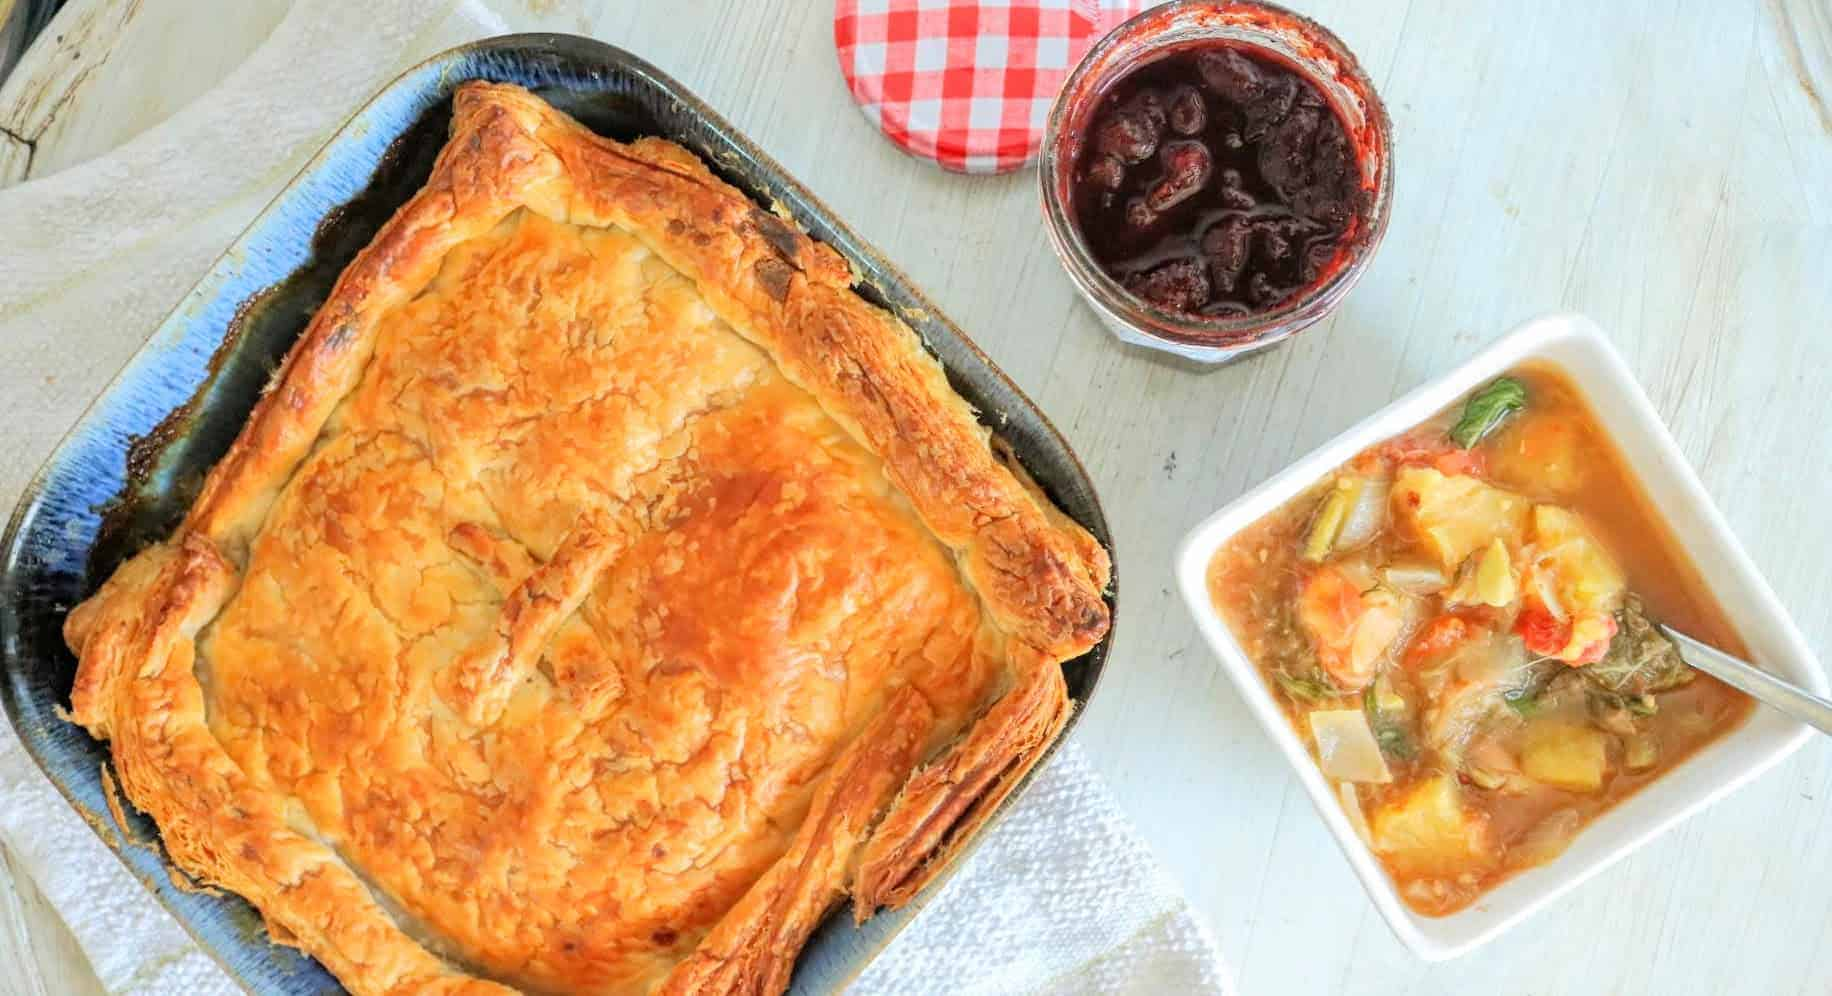 Favours for Neighbours: 2 Rhubarb Recipes